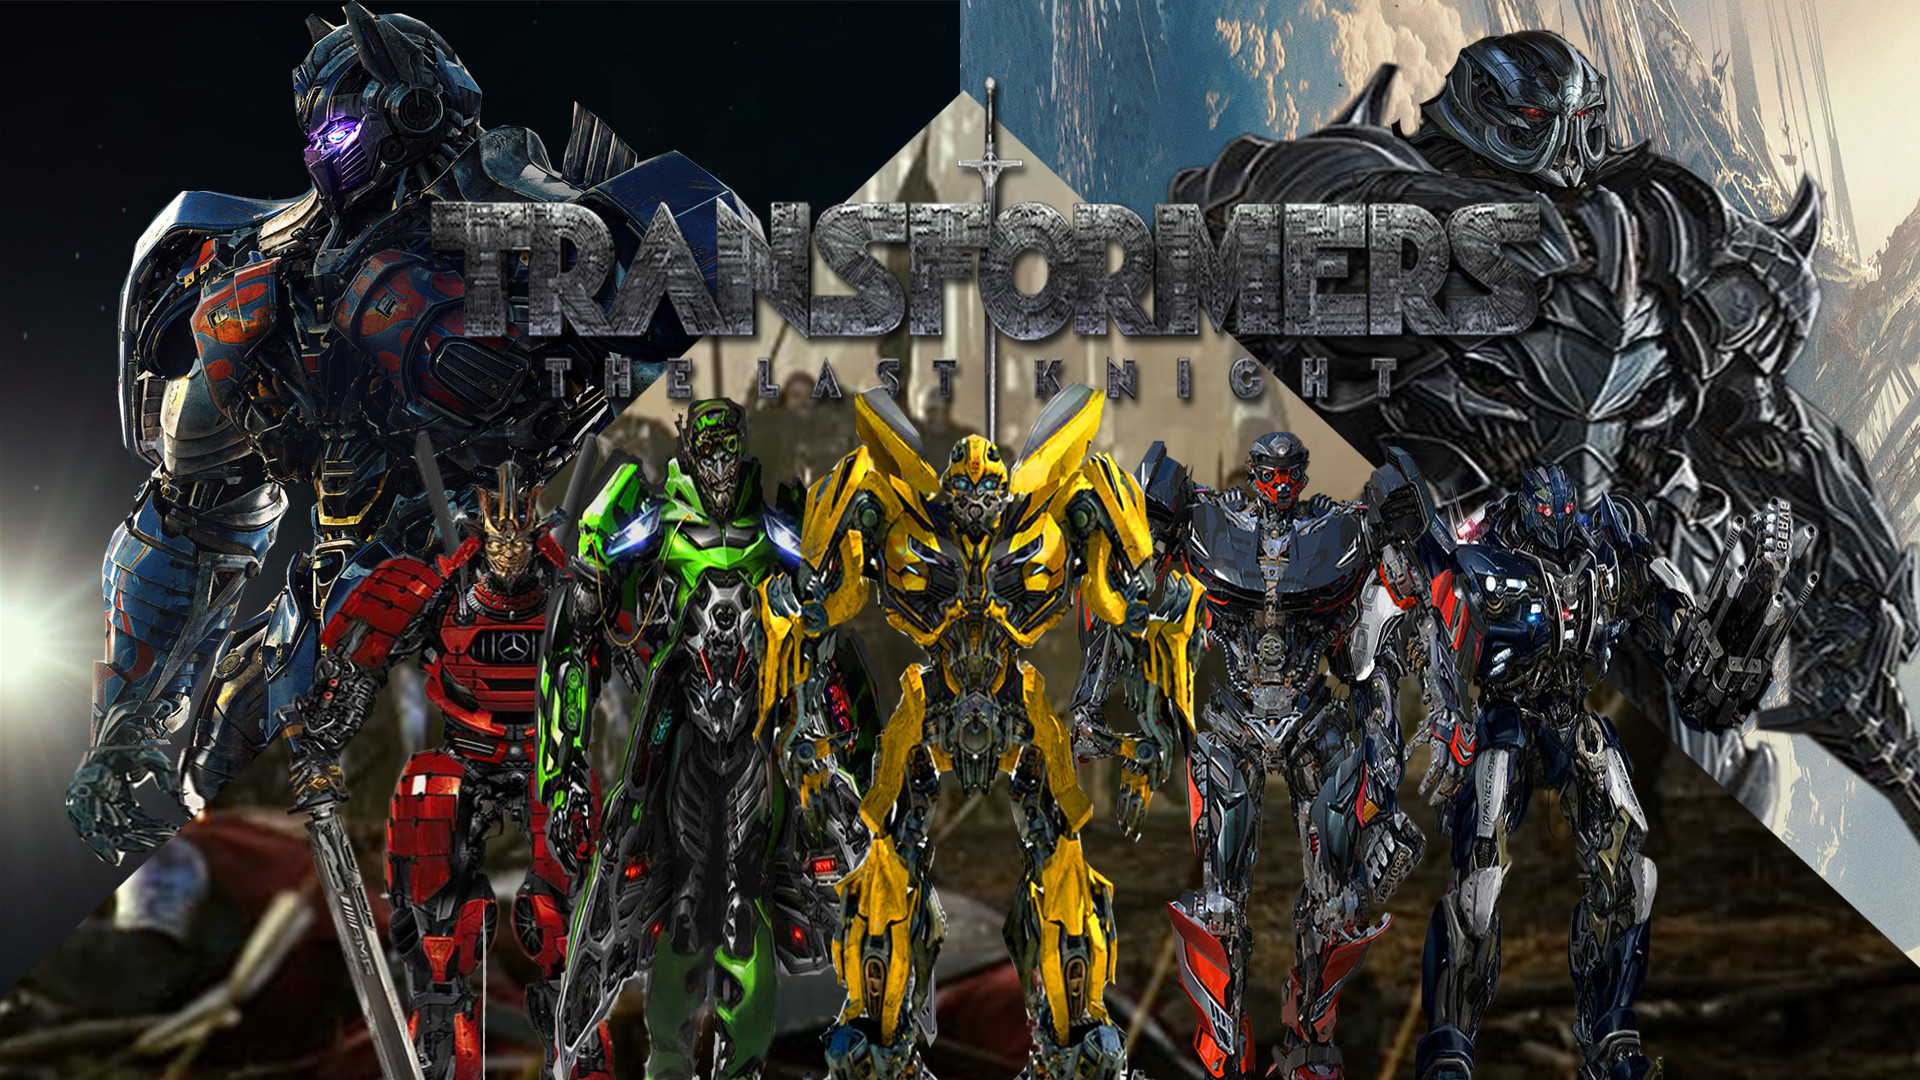 Transformers The Last Knight 1080p Download Posted By Michelle Peltier